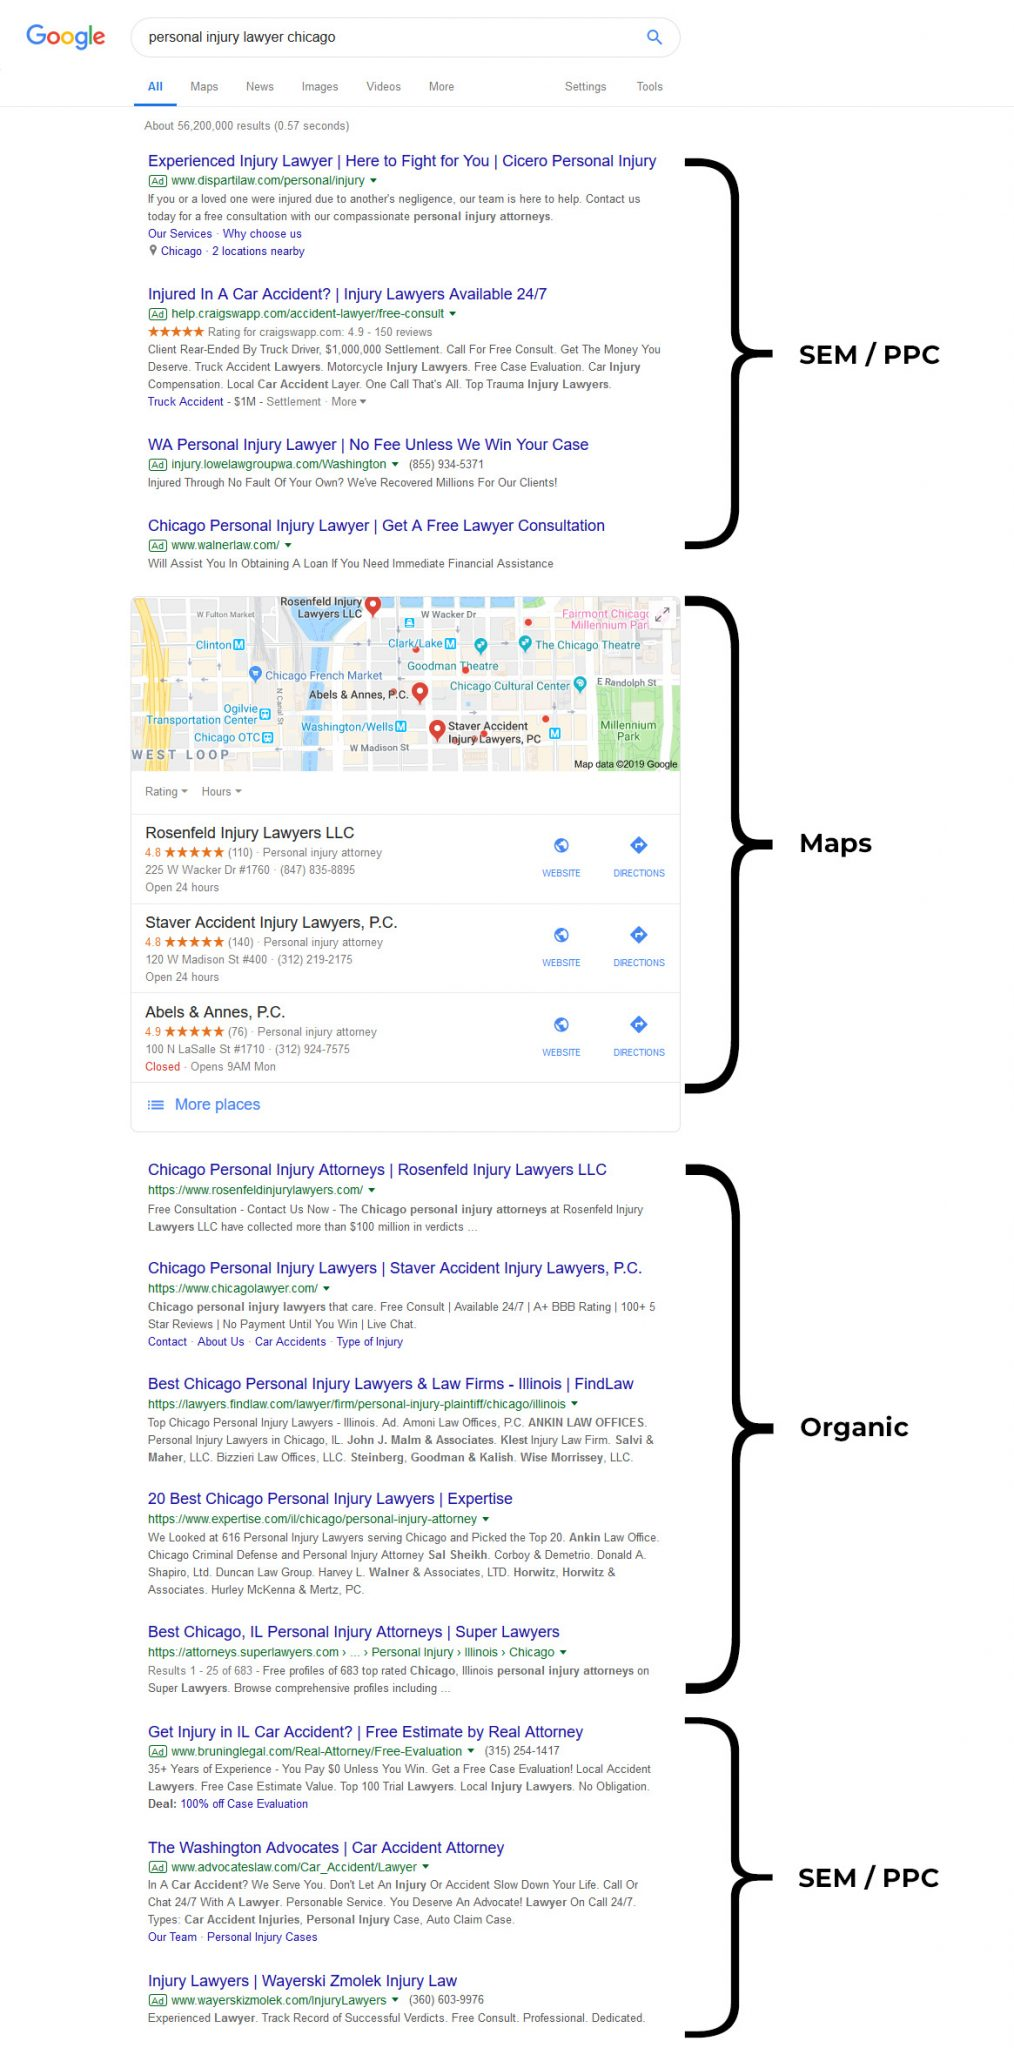 google-search-engine-results